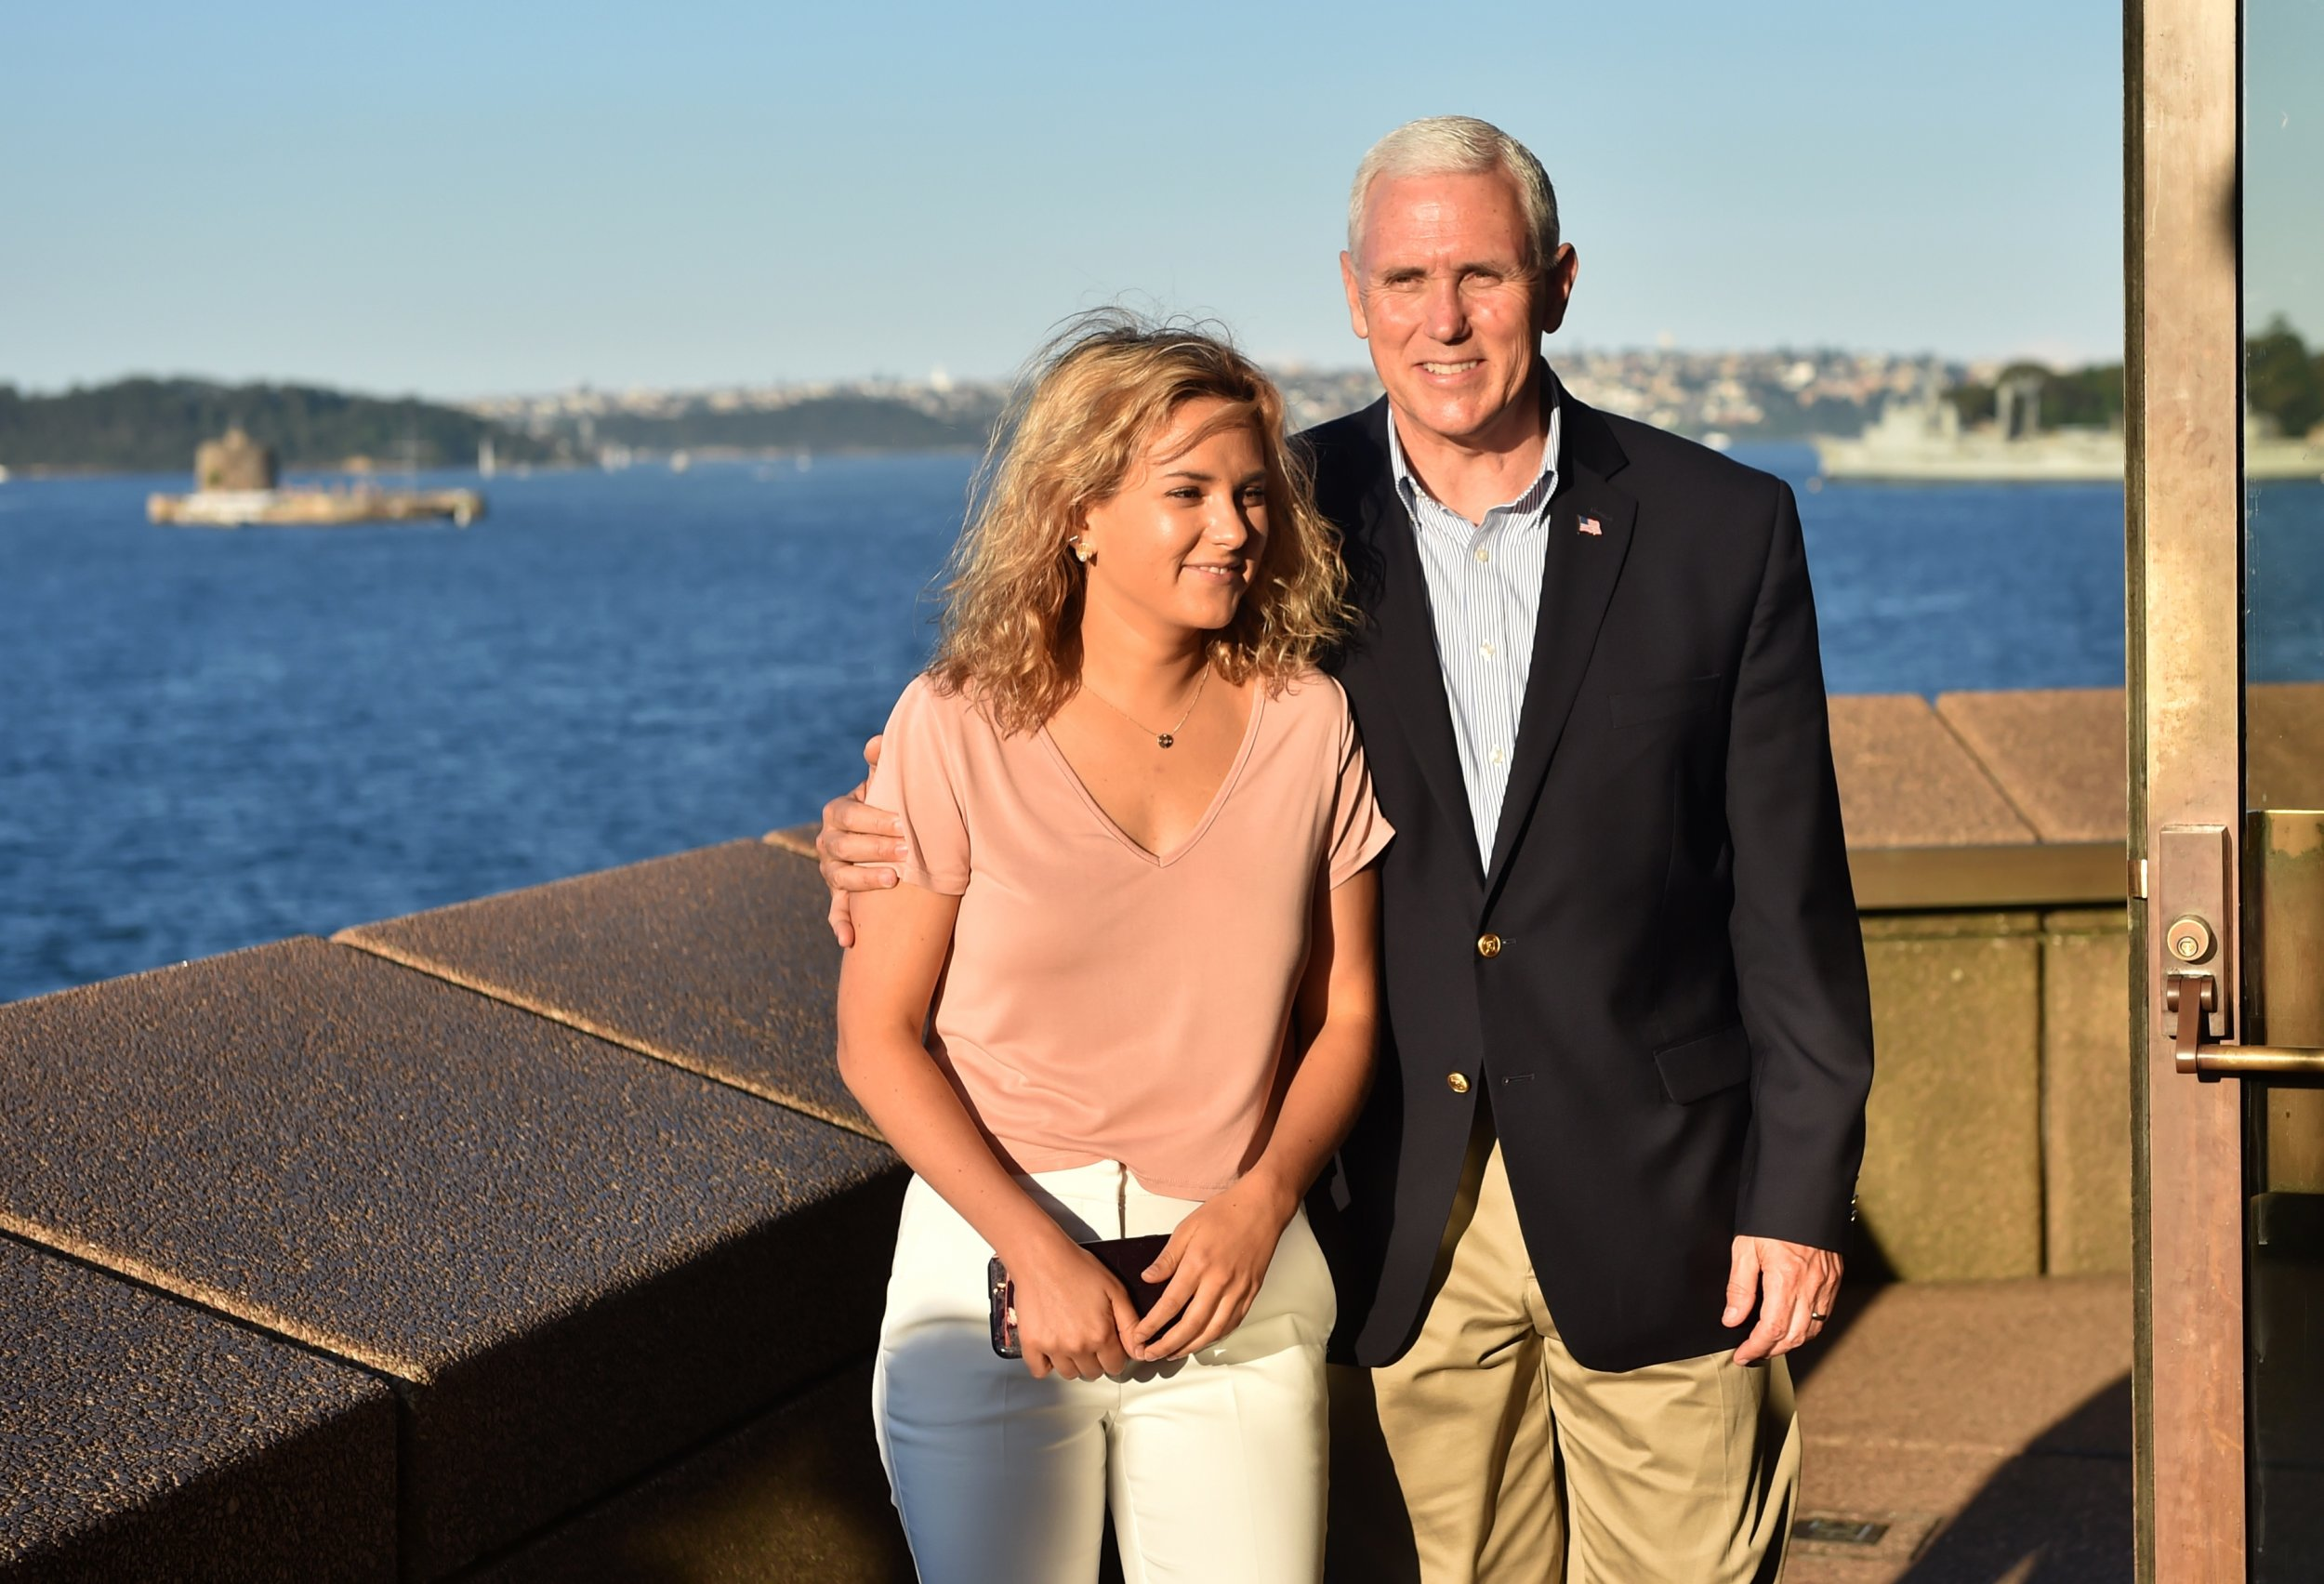 Mike and Charlotte Pence